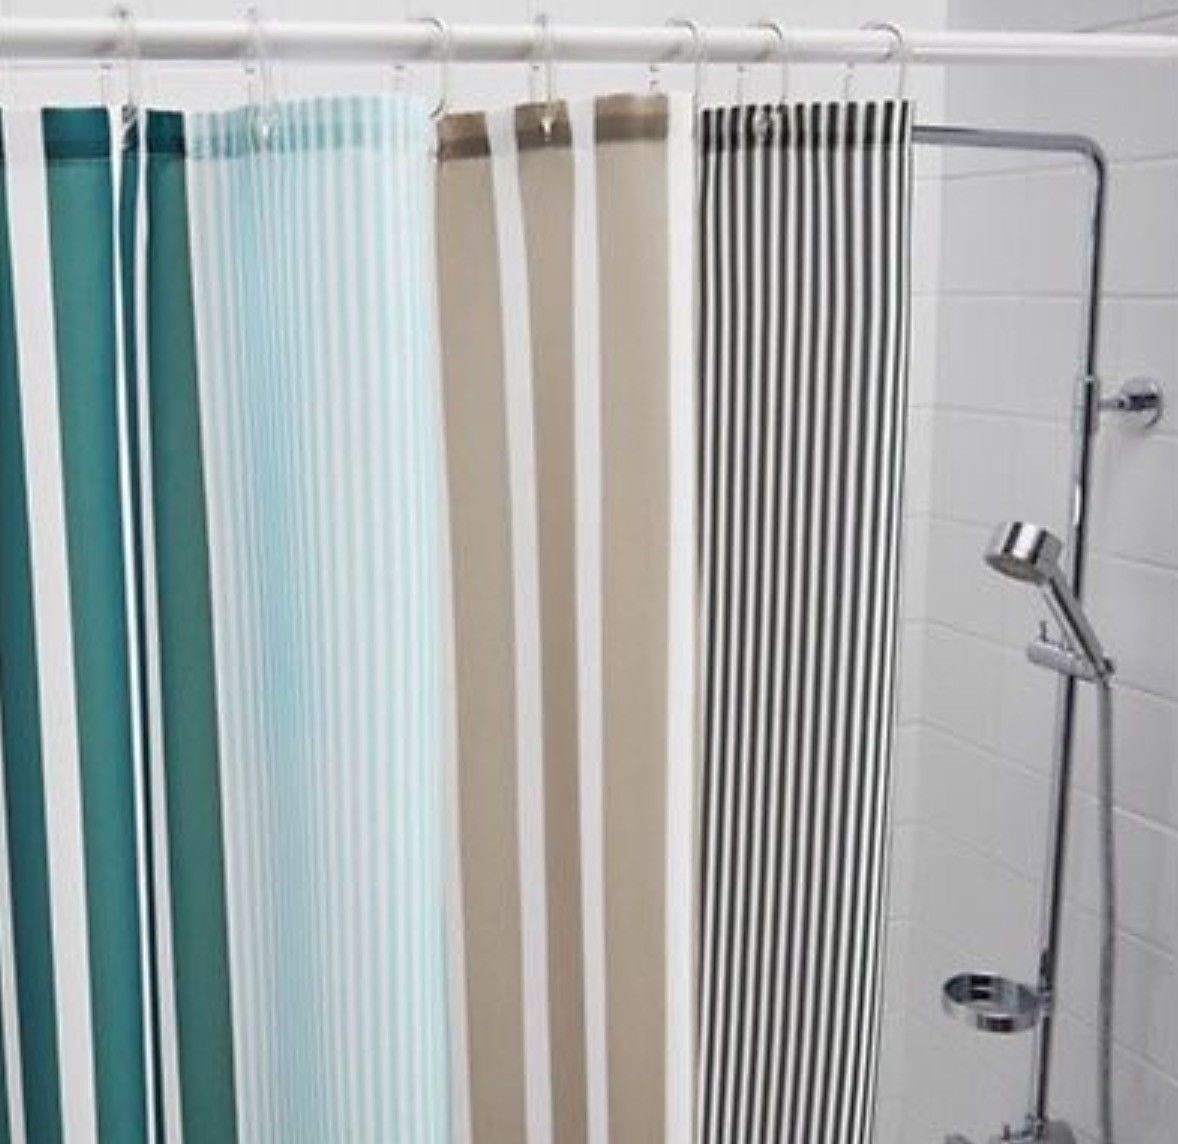 Ikea Shower Curtain for Best Your Bathroom Decoration: Boys Shower Curtains | Ikea Shower Curtain | Clear Pvc Shower Curtain